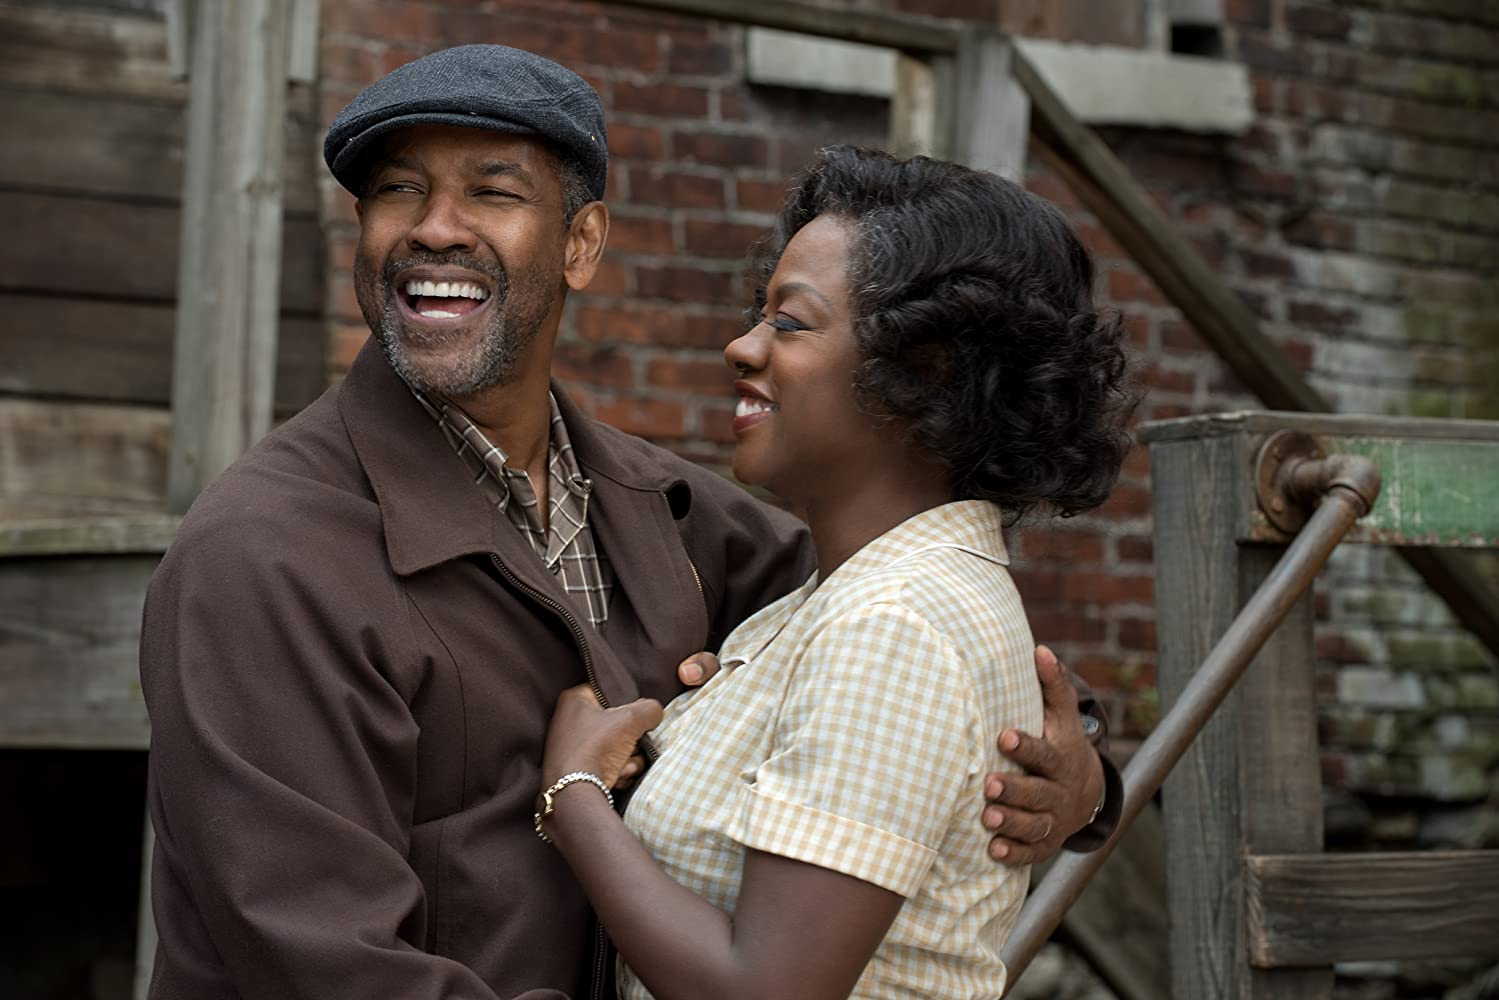 Denzel Washington and Viola Davis in 'Fences' (Courtesy: Paramount)